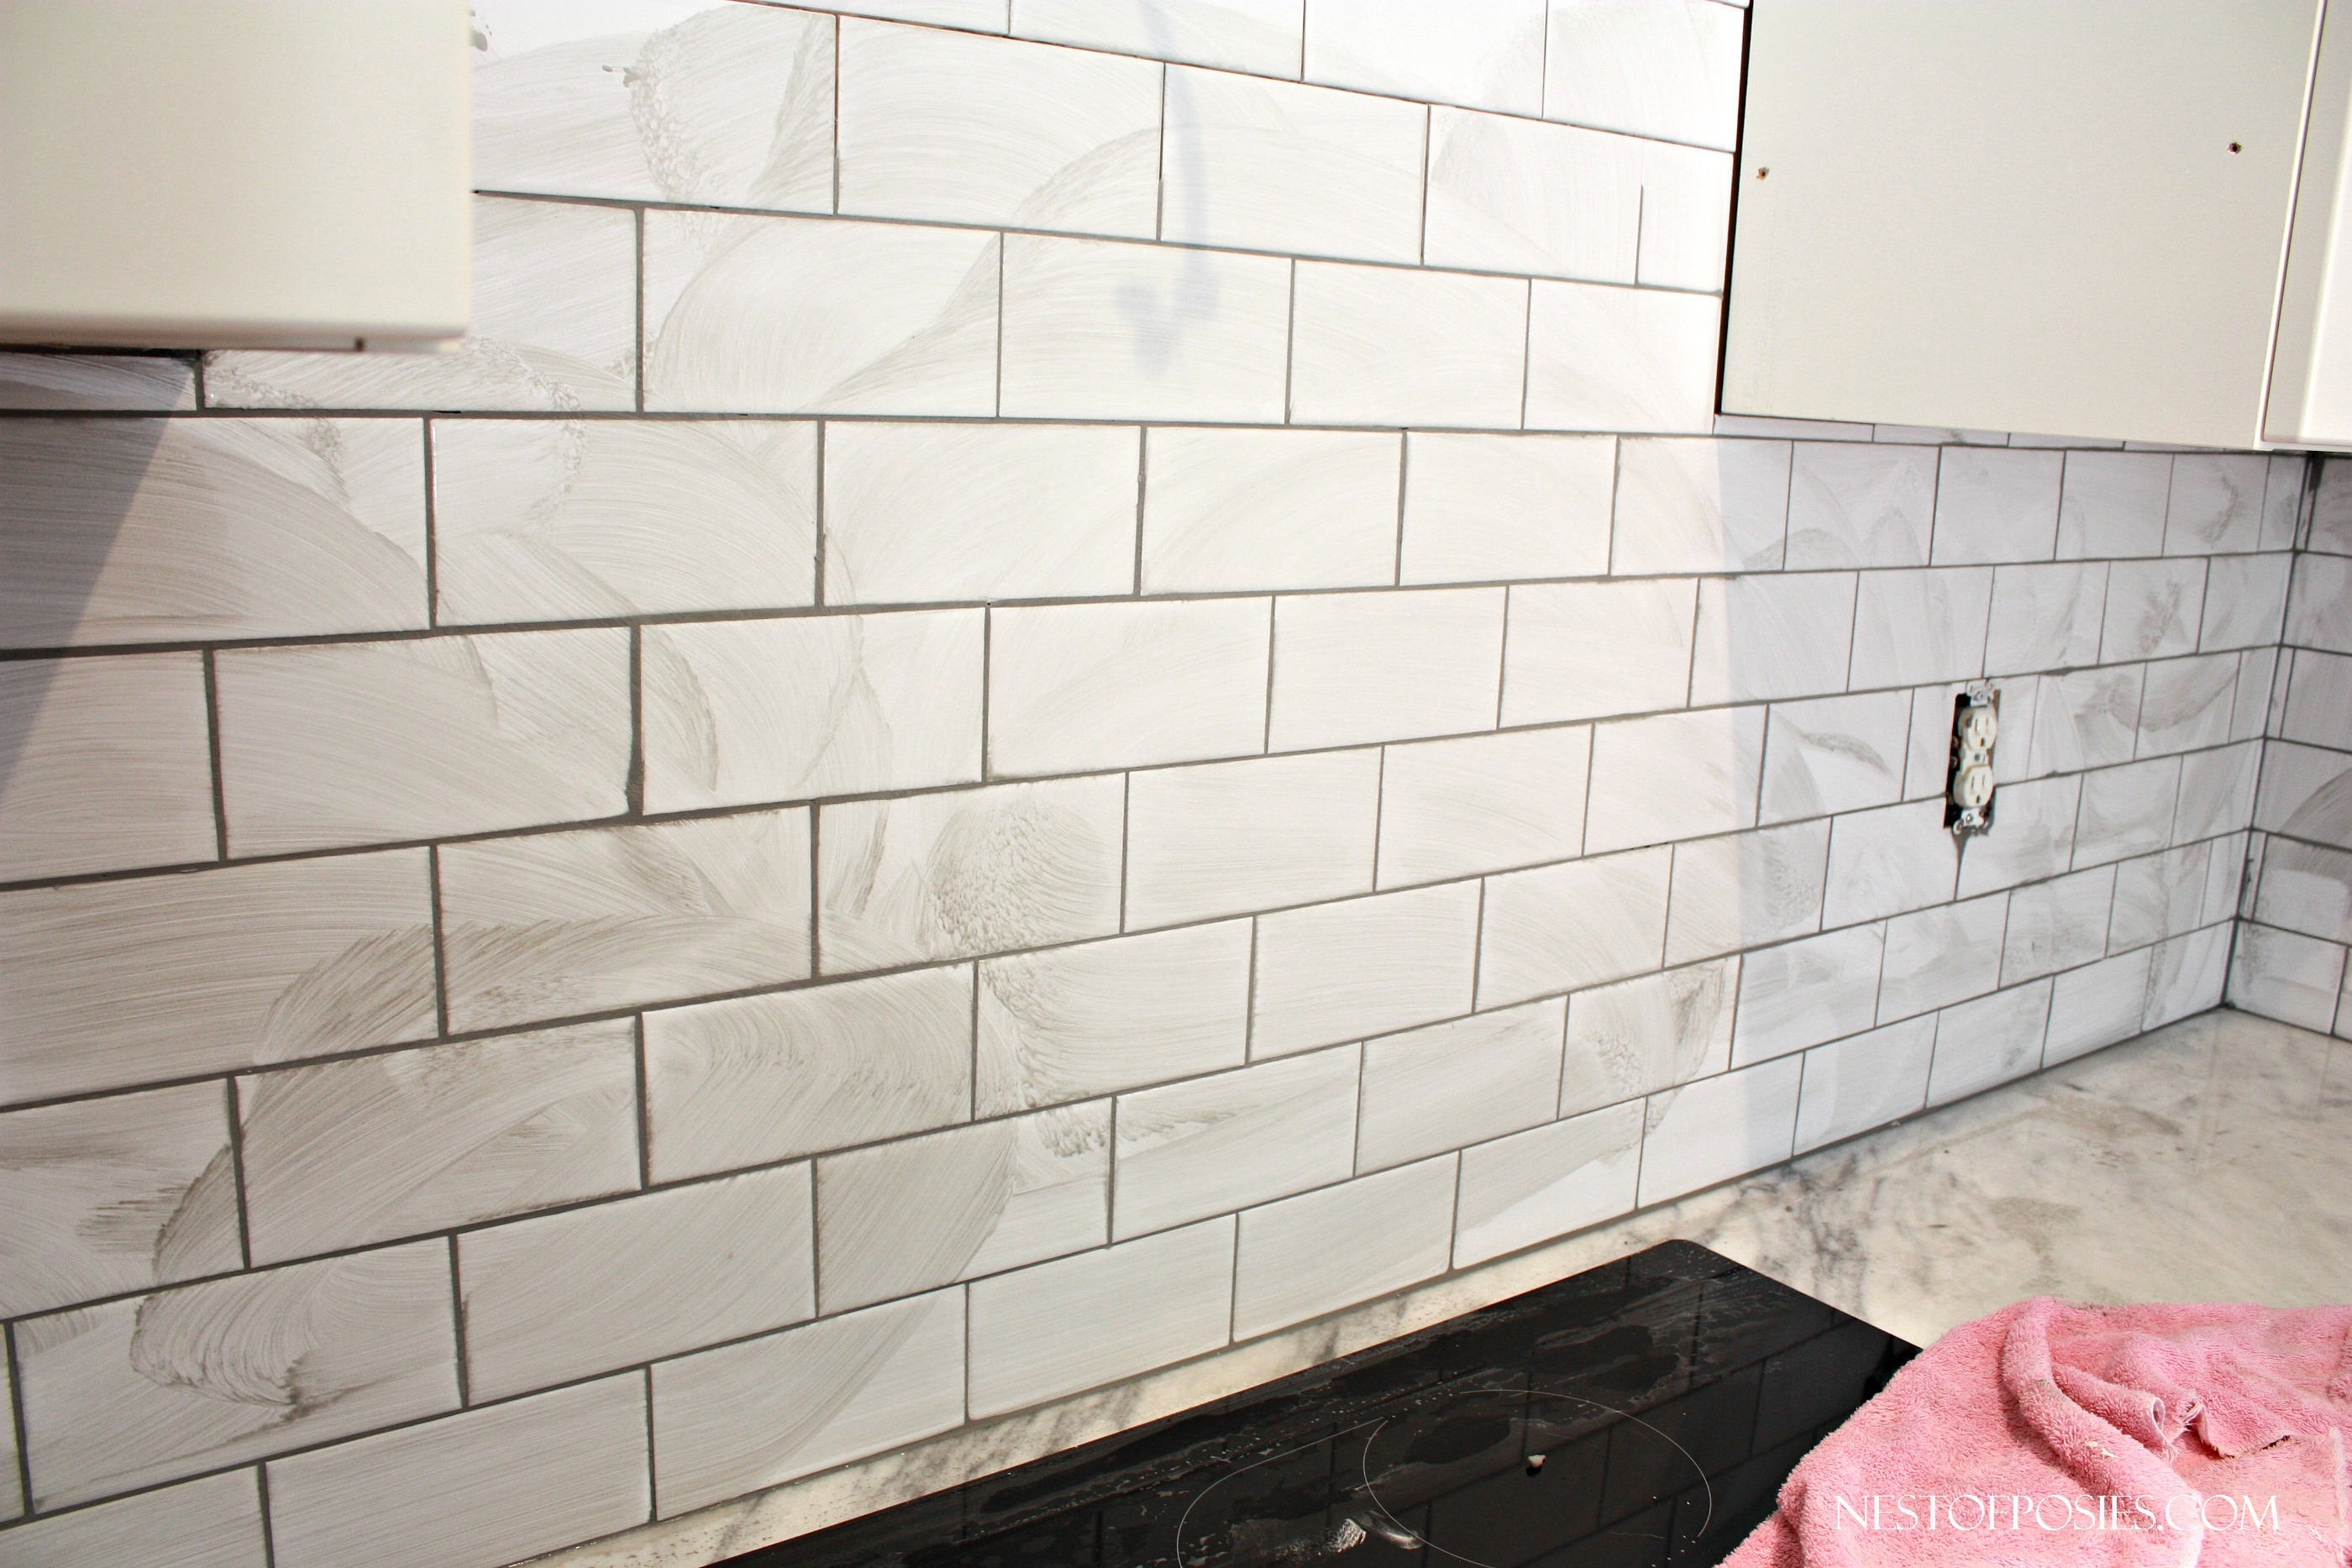 Grout color for white subway tile - Grouting The Subway Tile Backsplash